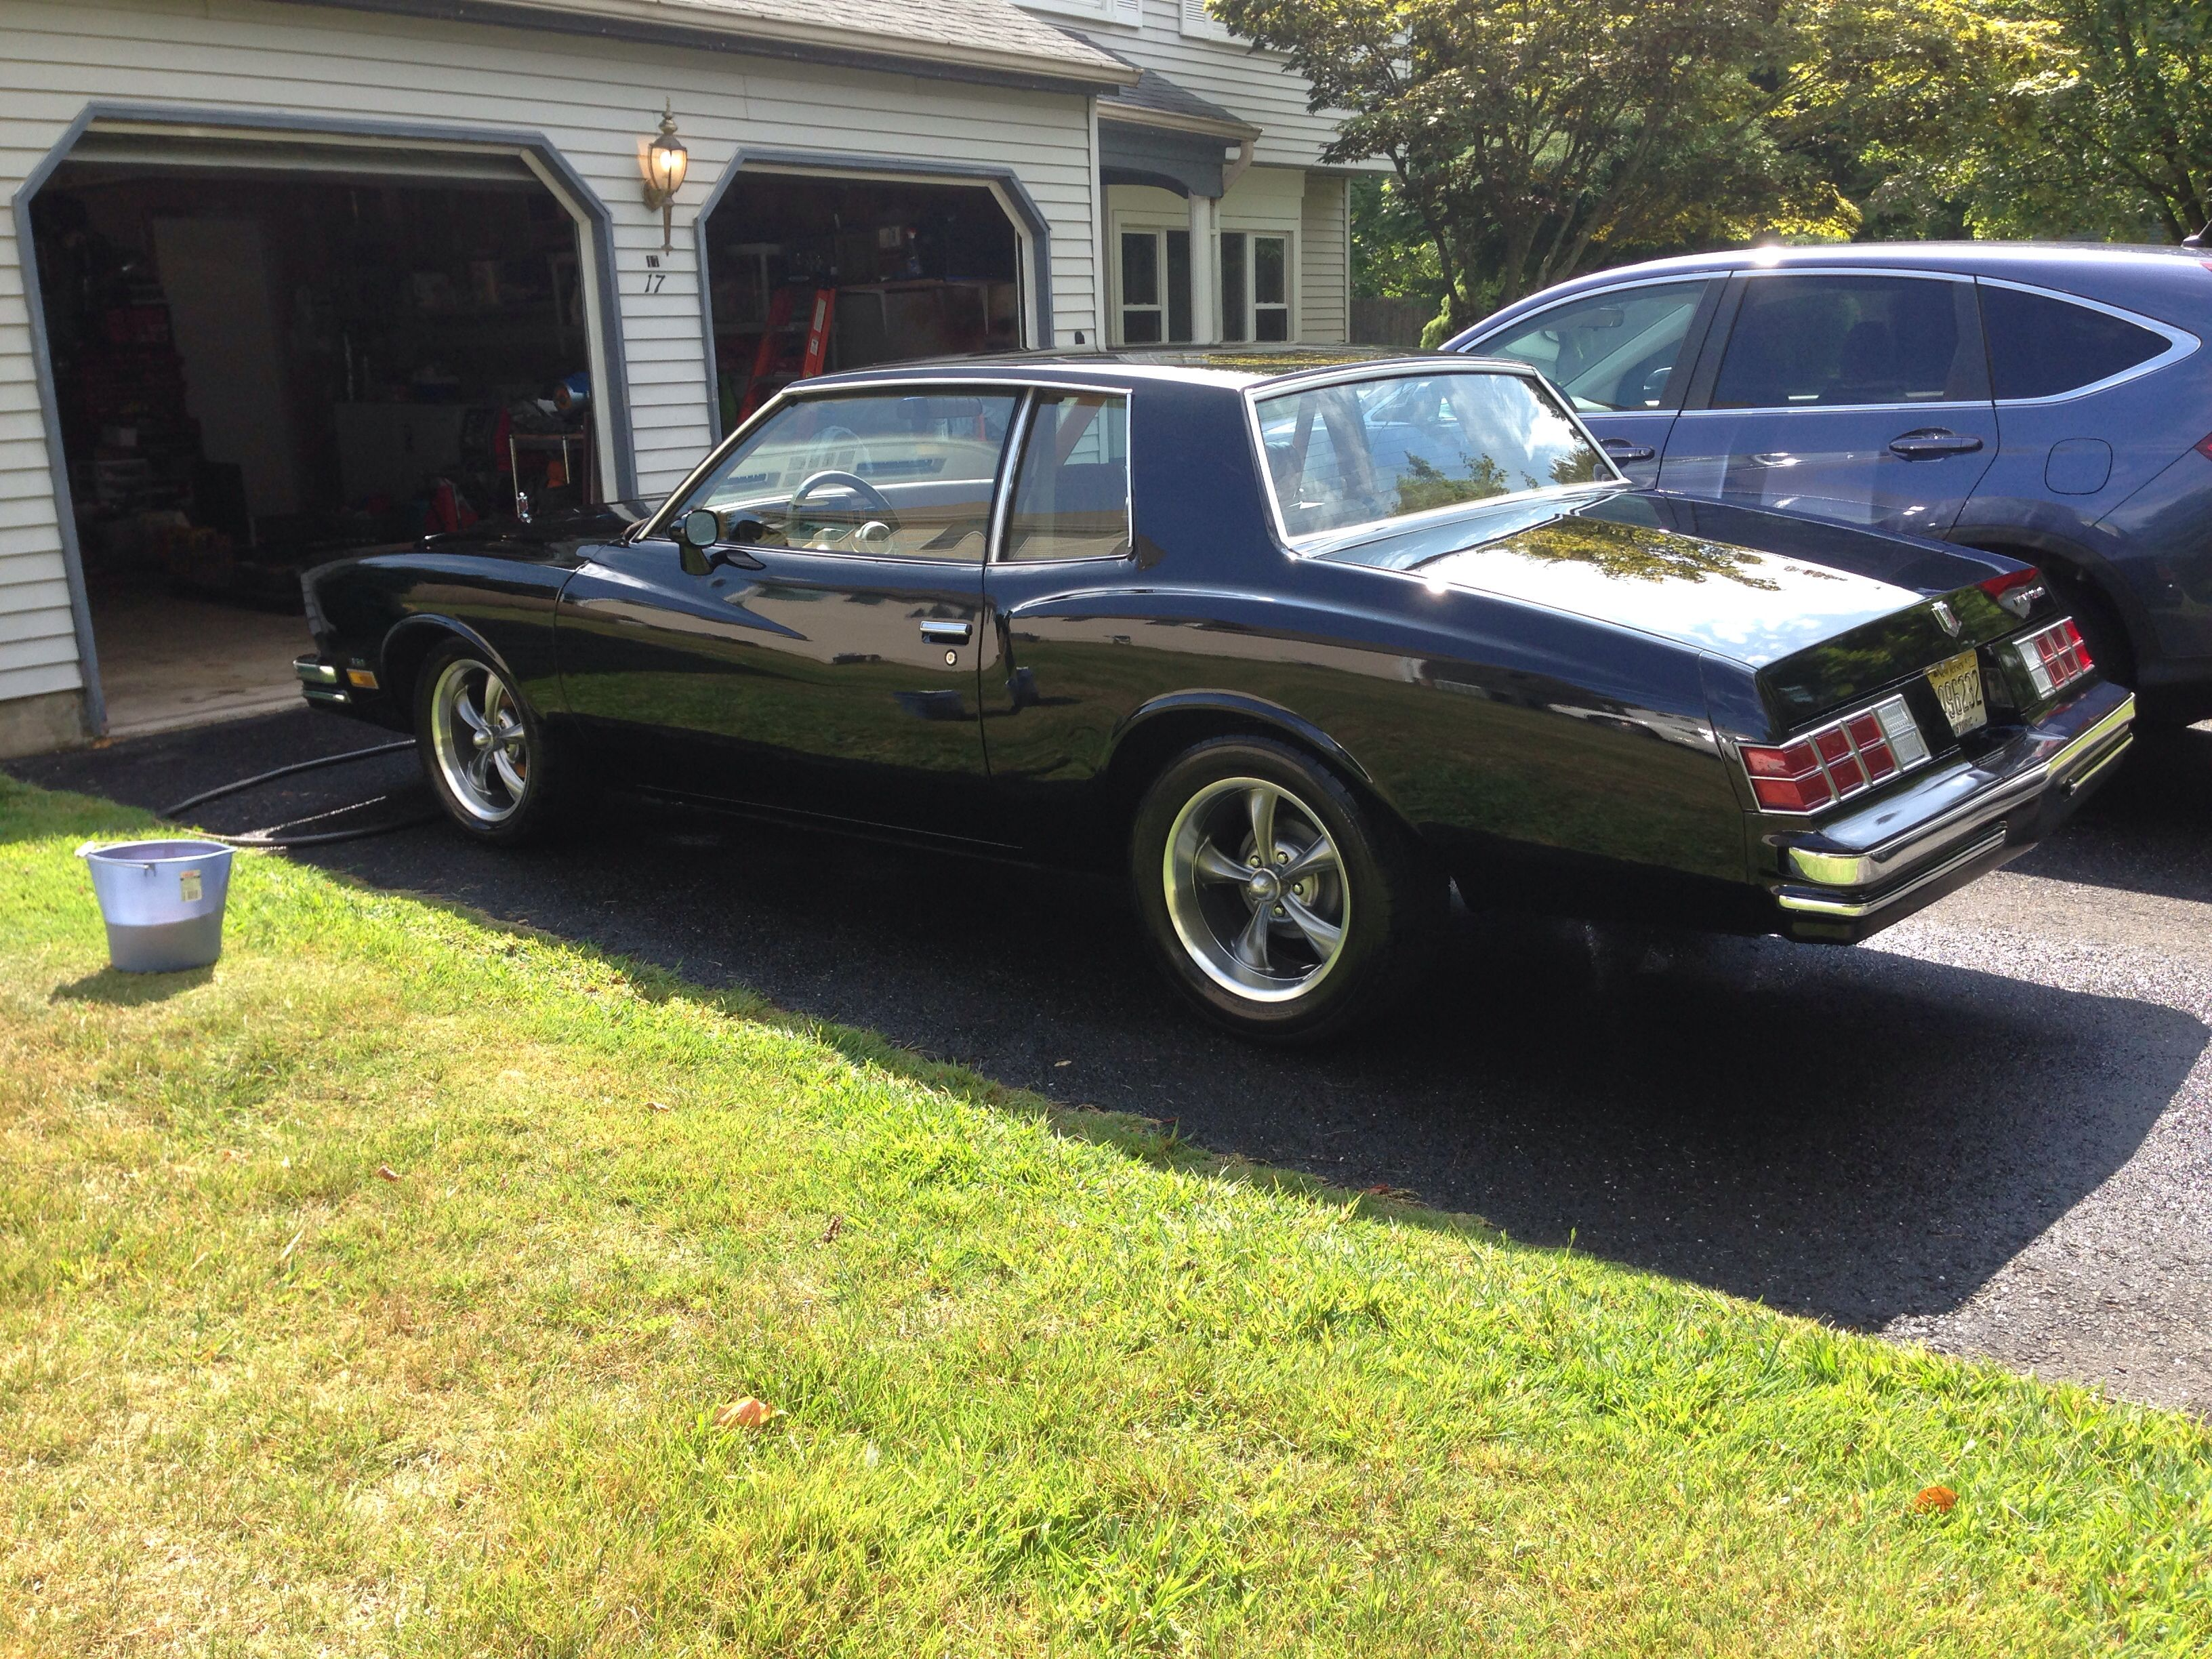 1980 Monte Carlo Cleaned Up Chevrolet Monte Carlo Donk Cars